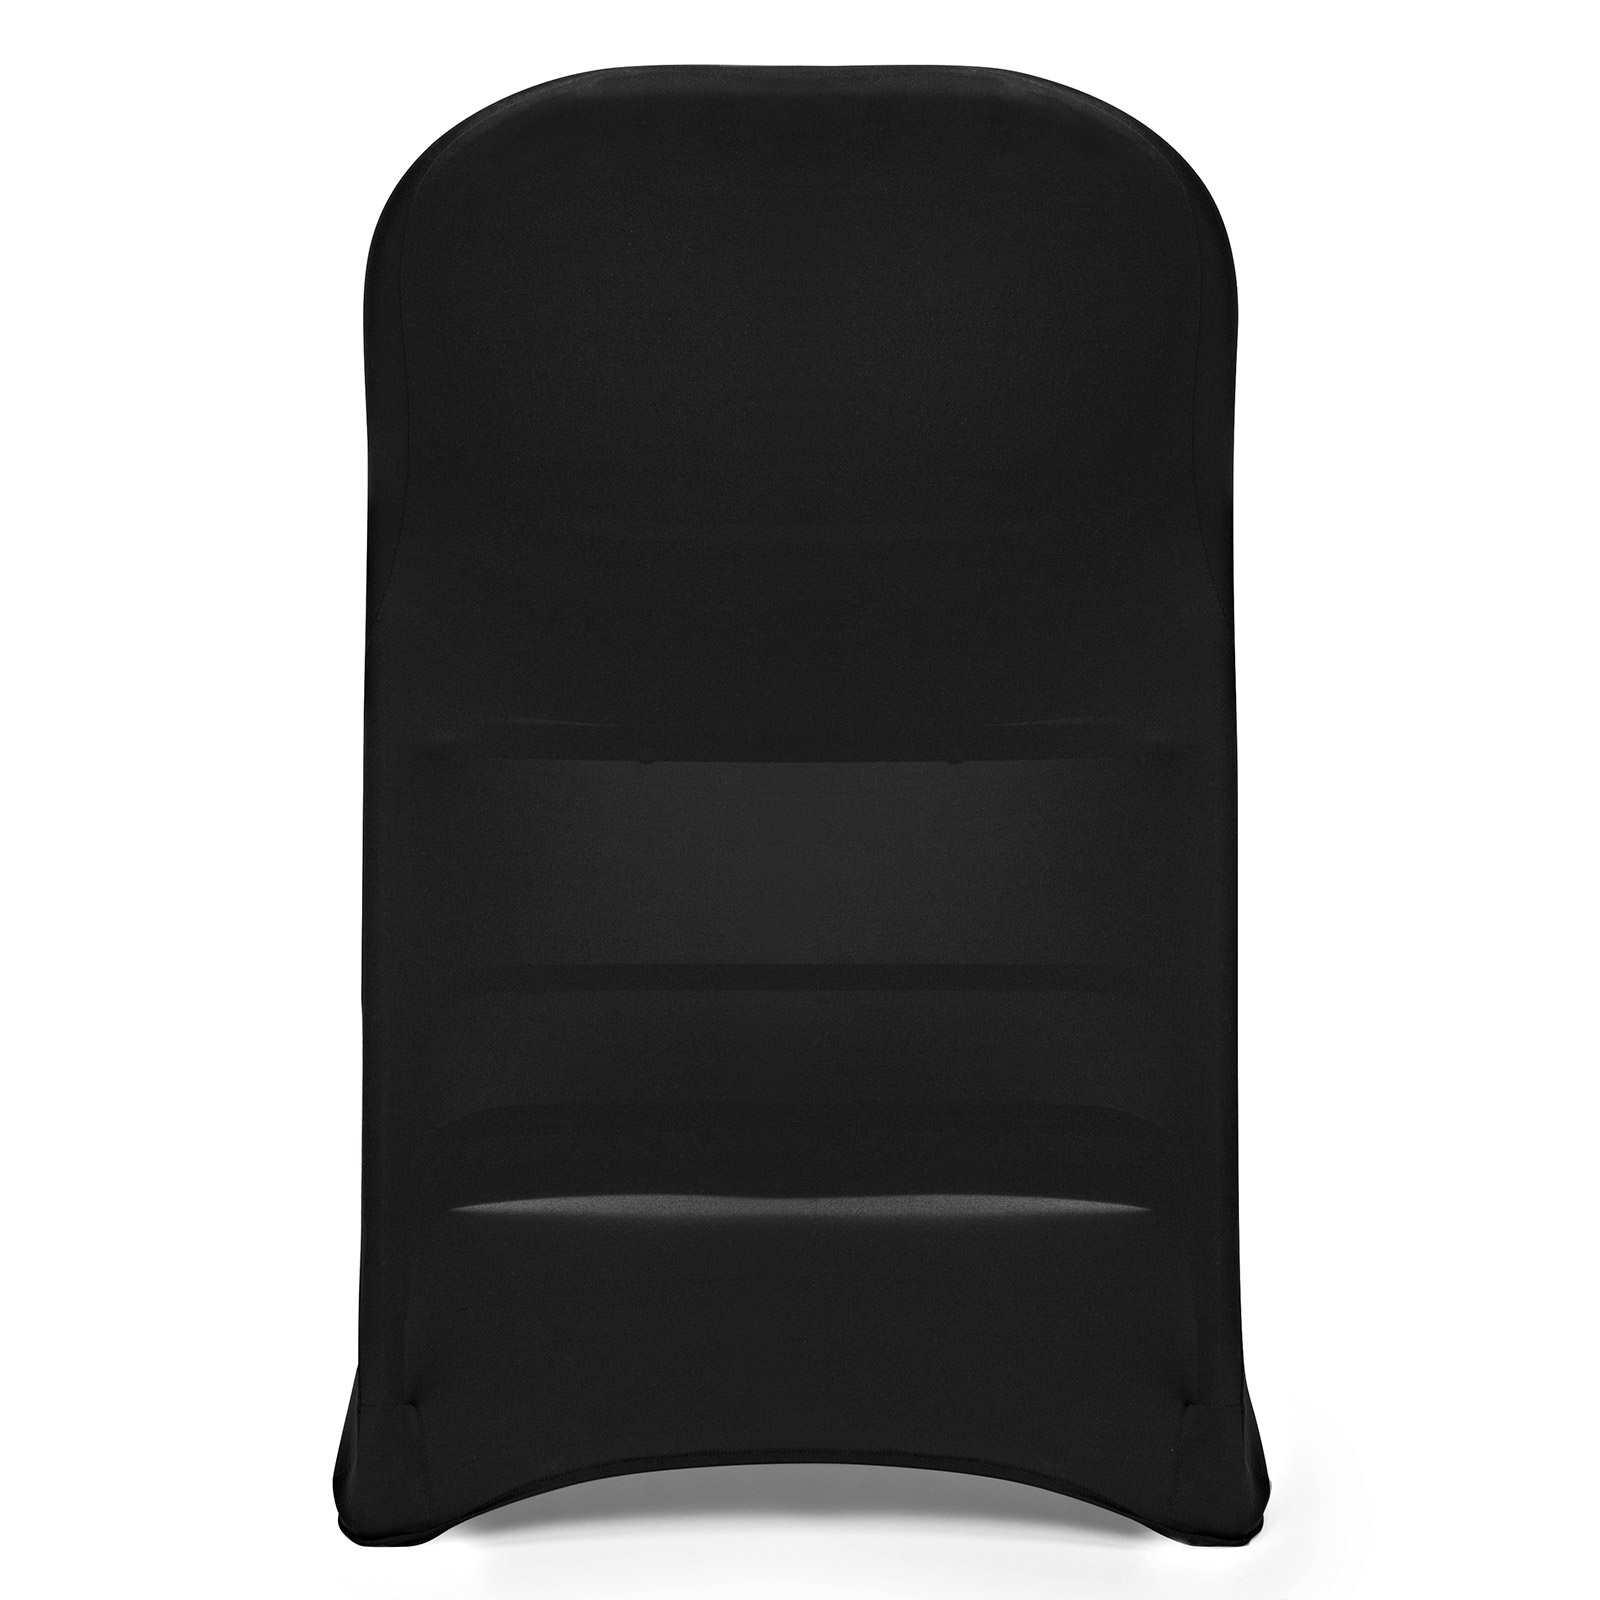 spandex folding chair covers for sale swing with stand malaysia 10 wedding party décor ebay